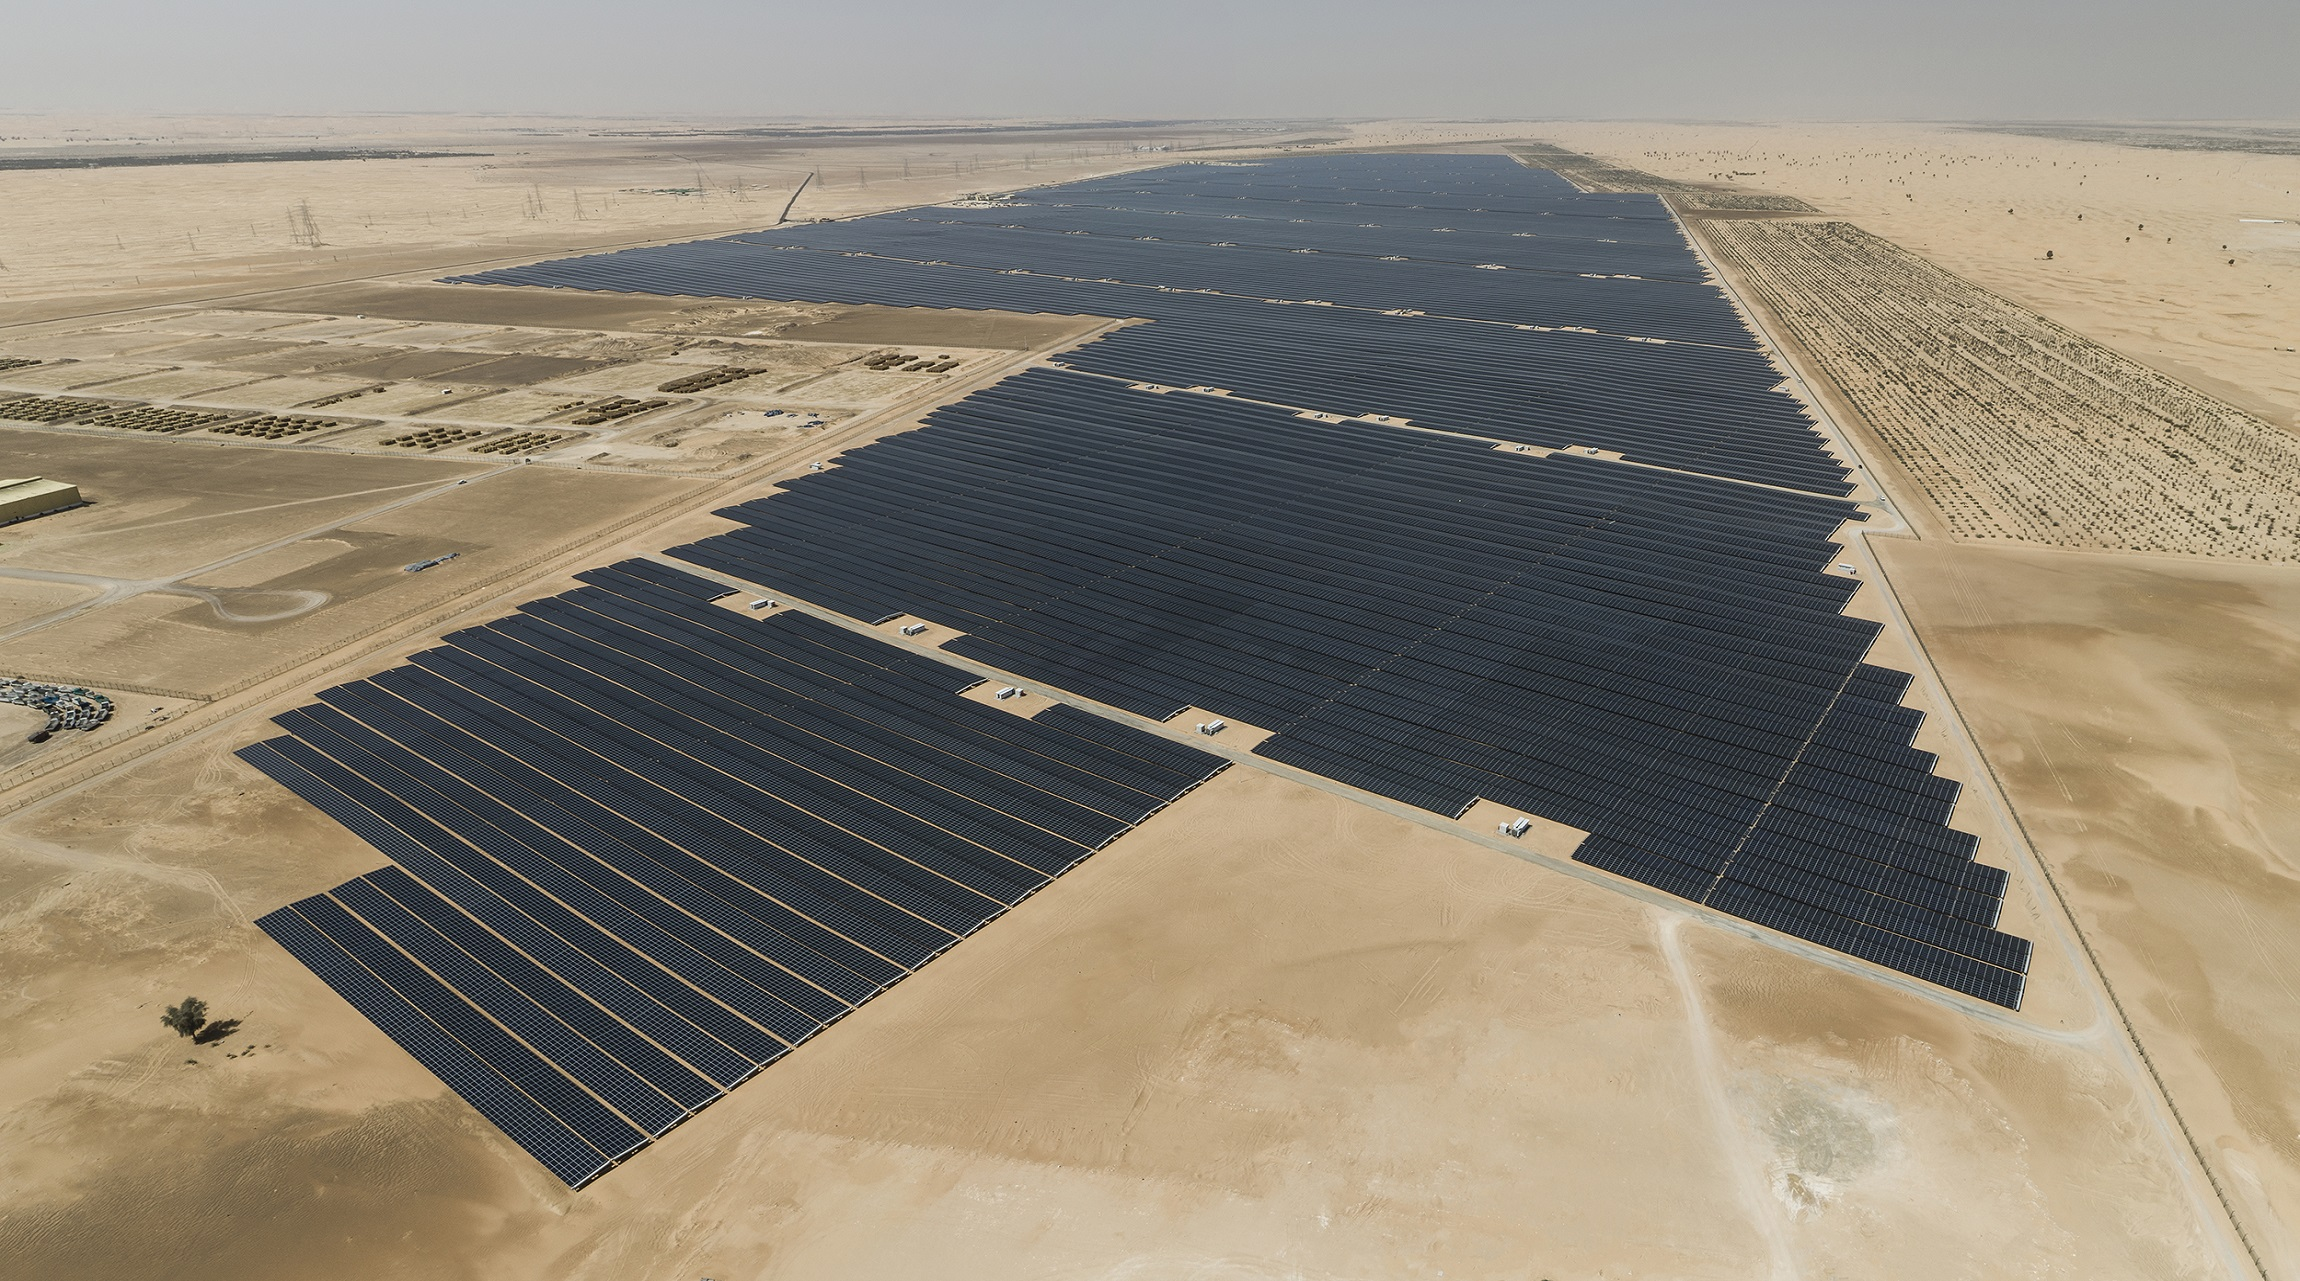 Abu Dhabi To Invite Bids For Third Solar Ipp As Soon As February 2020 News Power Utilities Middle East